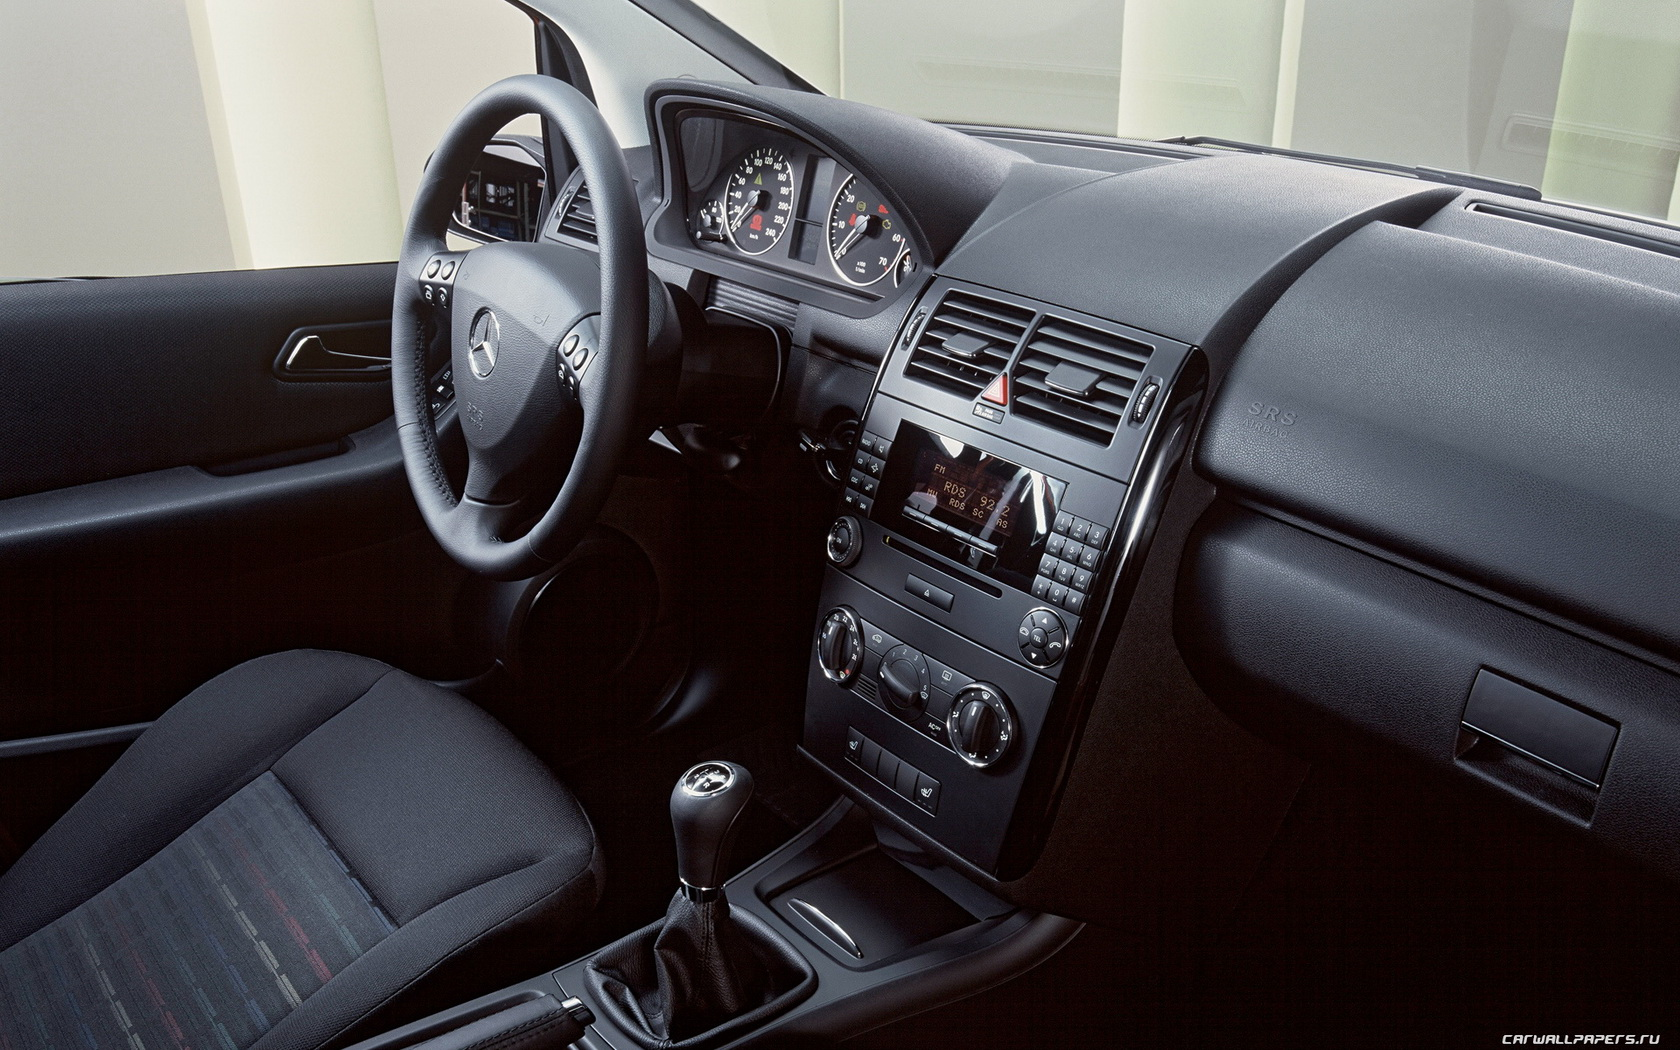 mercedes benz a 170 classic picture 4 reviews news. Black Bedroom Furniture Sets. Home Design Ideas